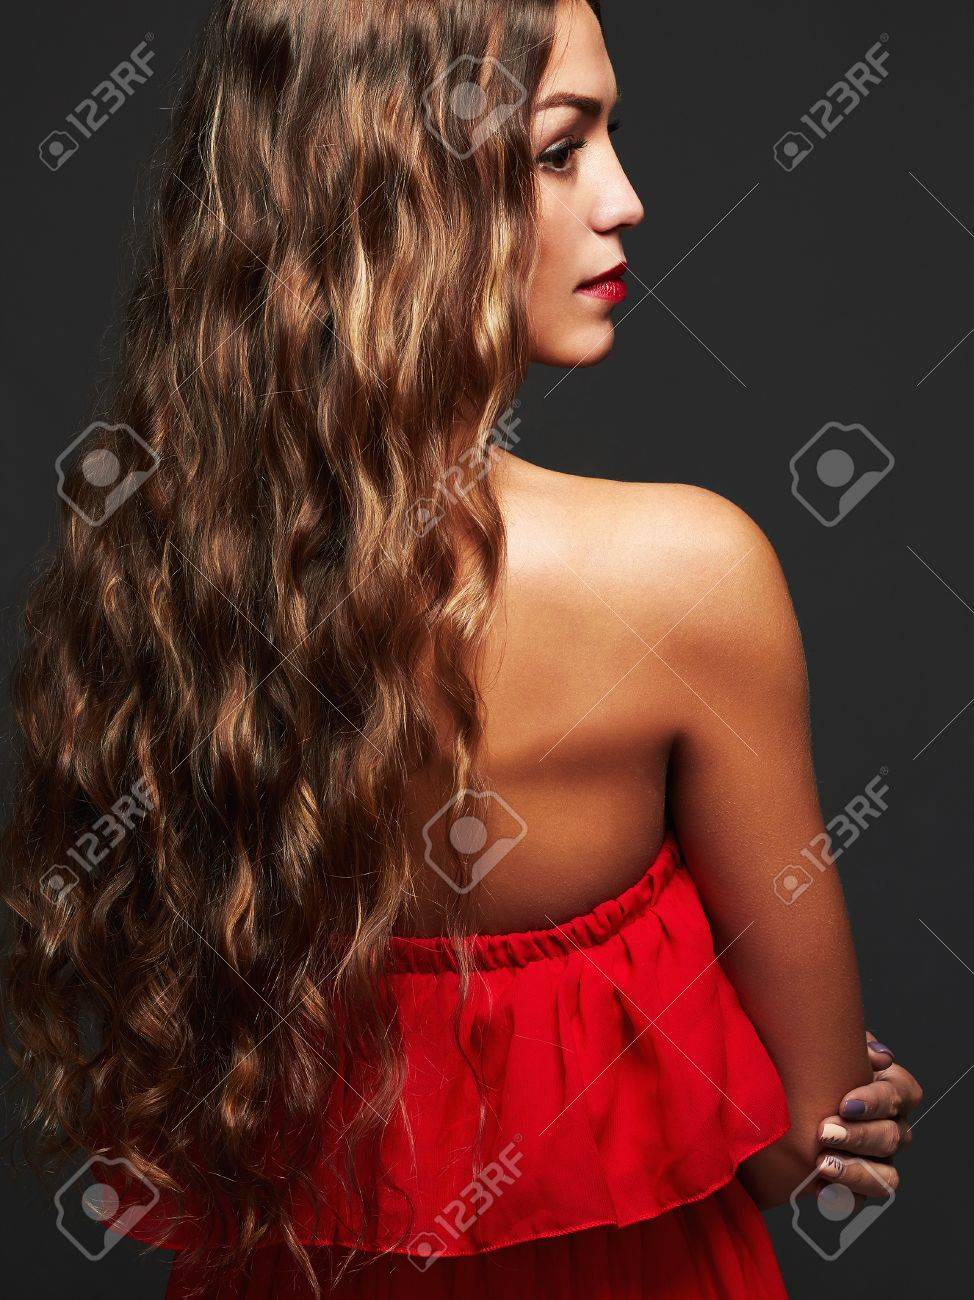 Back View Of Brunette Woman With Long Curly Hair Beautiful Girl